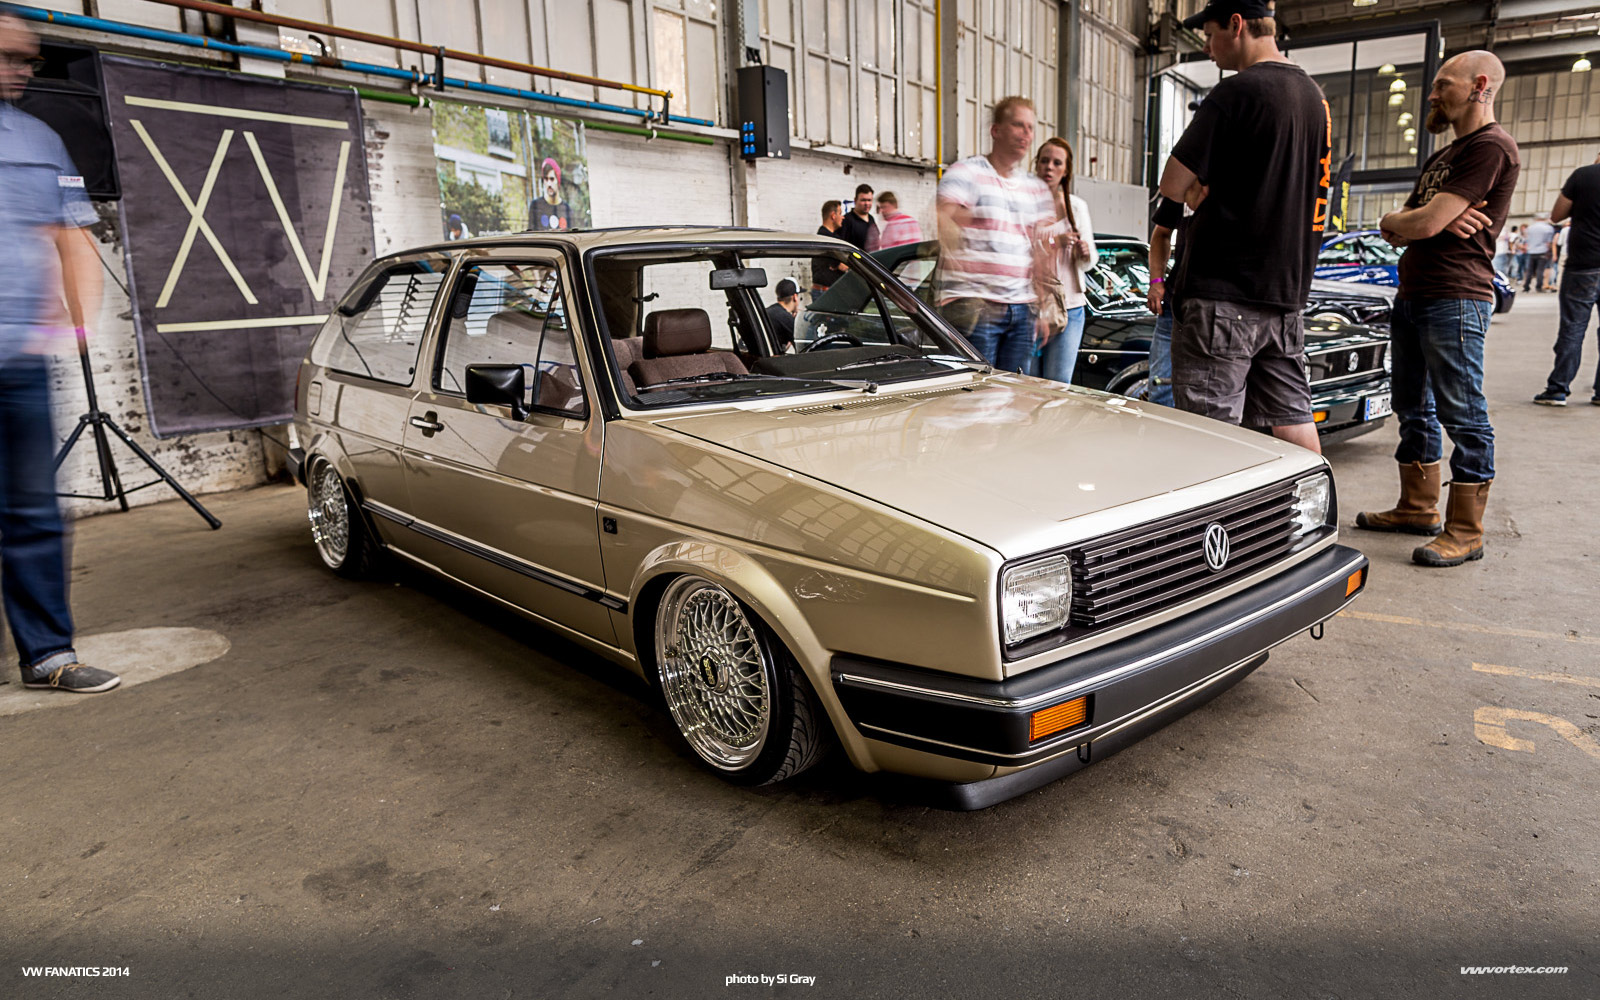 VWFanatics-2014-Si-Gray-421